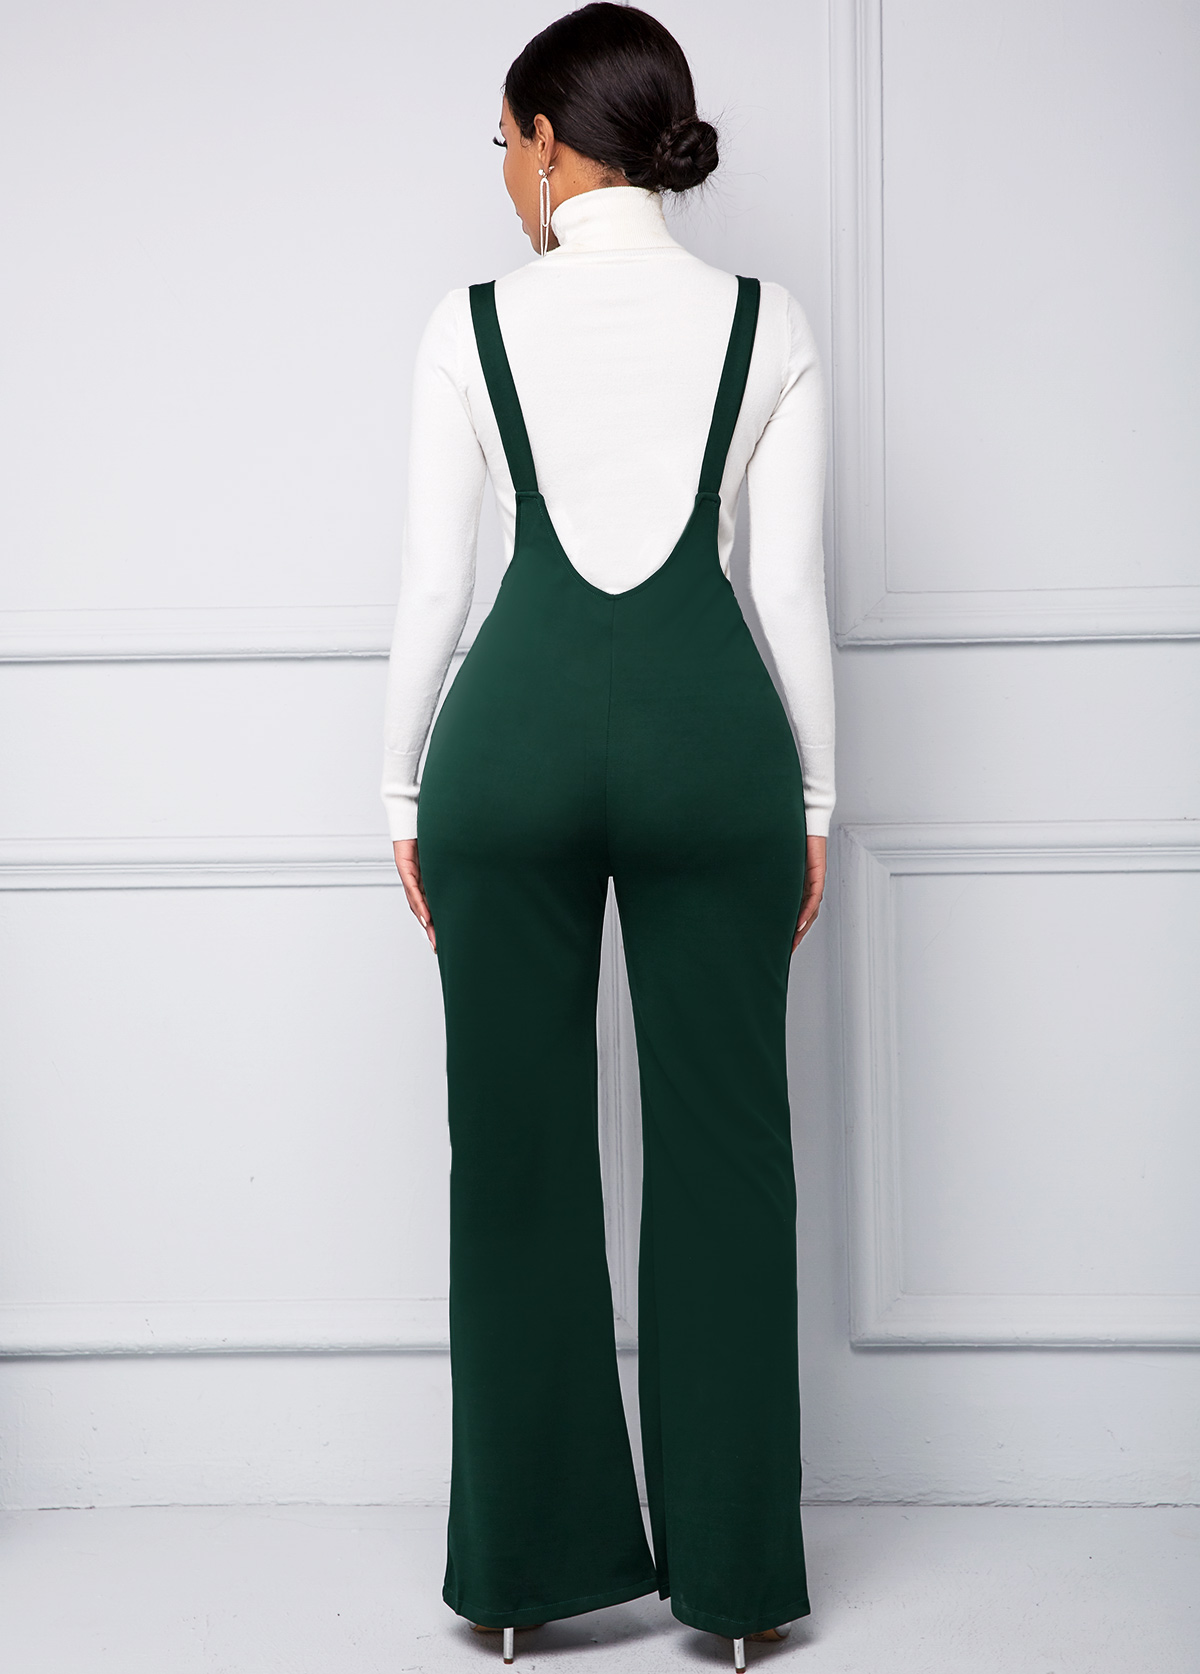 Ring Detail Spaghetti Strap Zip Front Jumpsuit